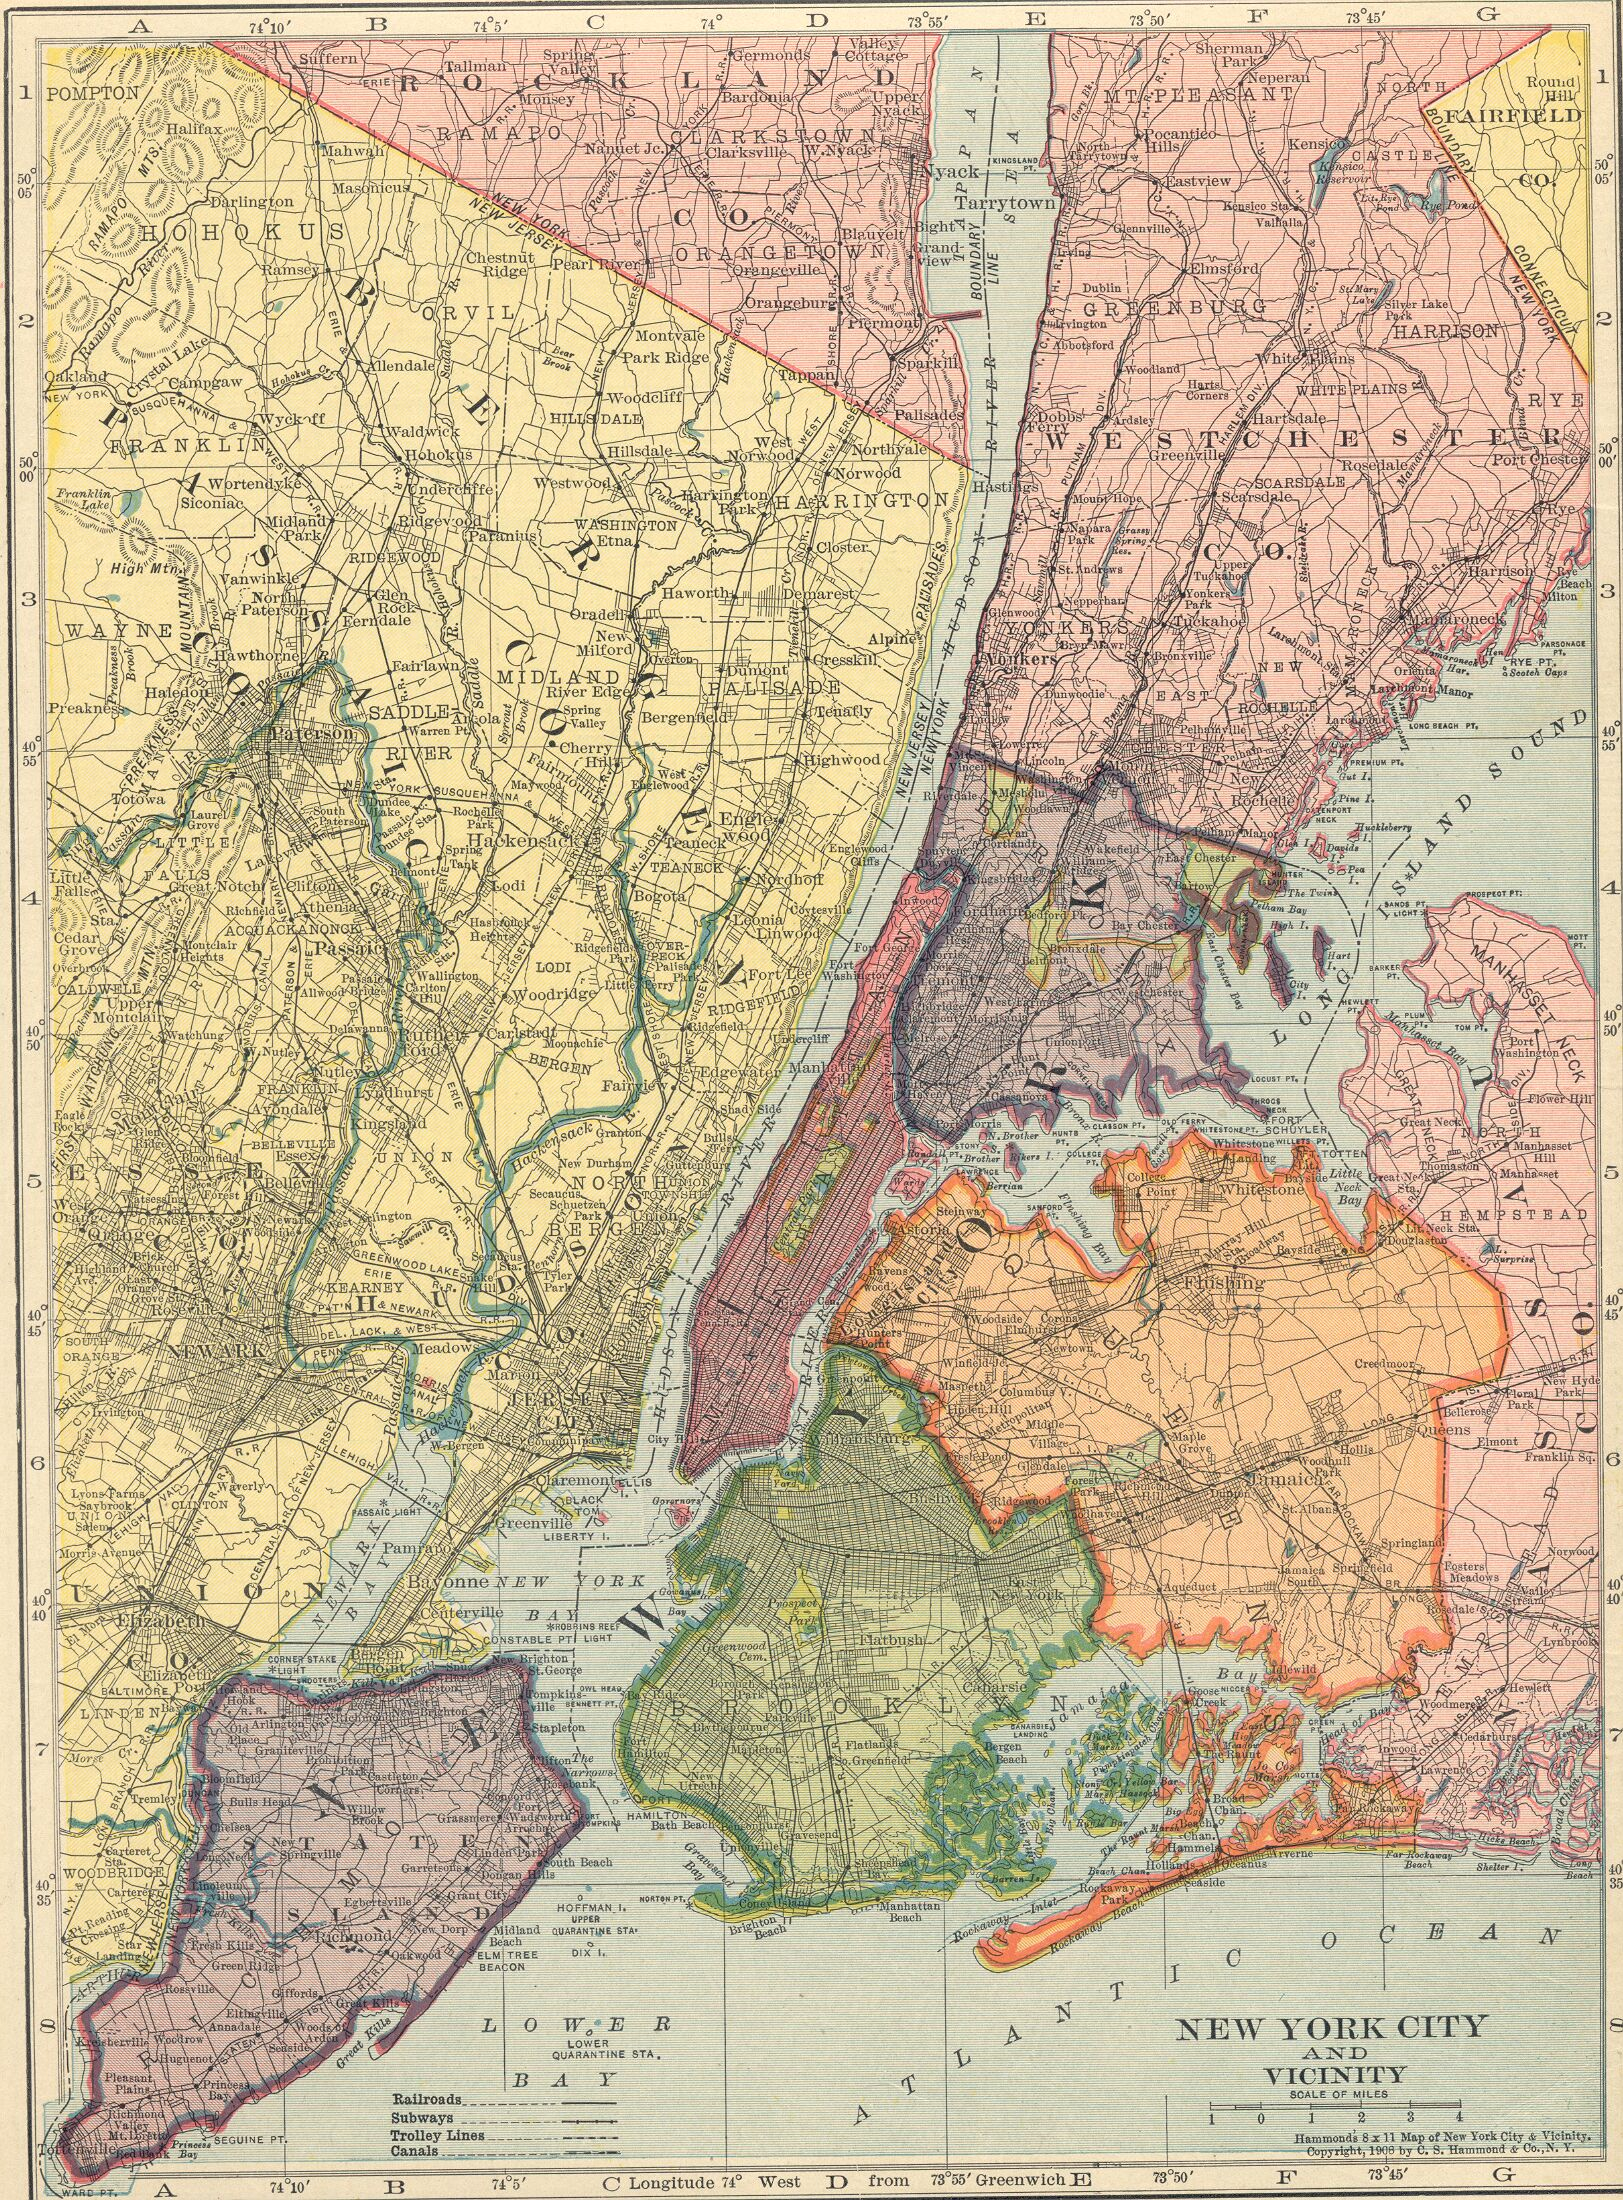 File:1906 NYC vicinity map.jpg - Wikimedia Commons on